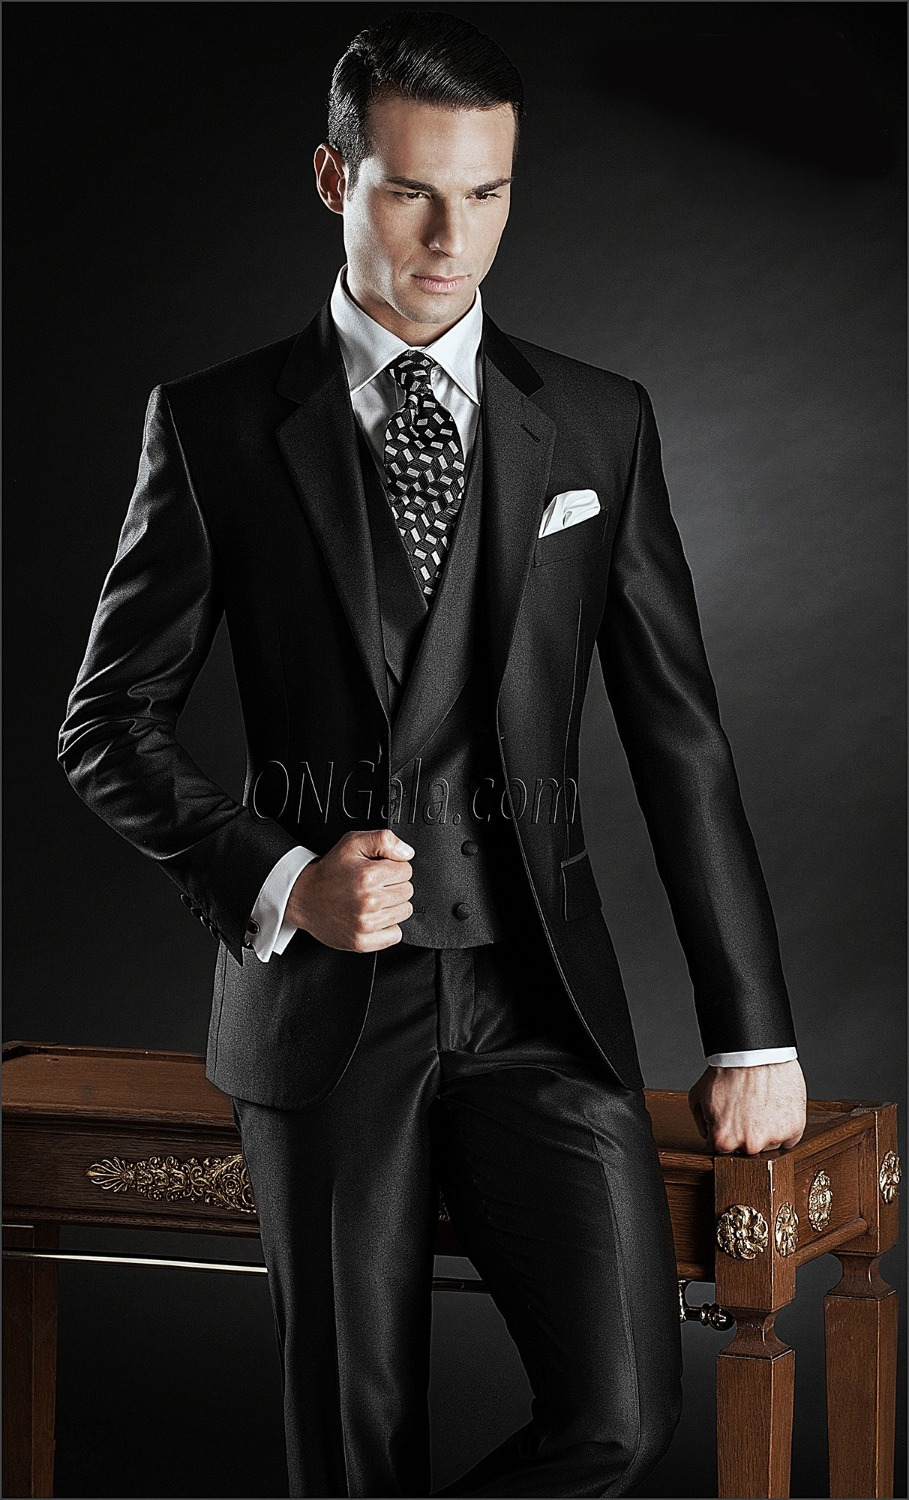 Slim Fit Groom Tuxedo Groomsmen Shiny Black Wedding Dinner Evening Suits Best Man Bridegroom Jacket Pants